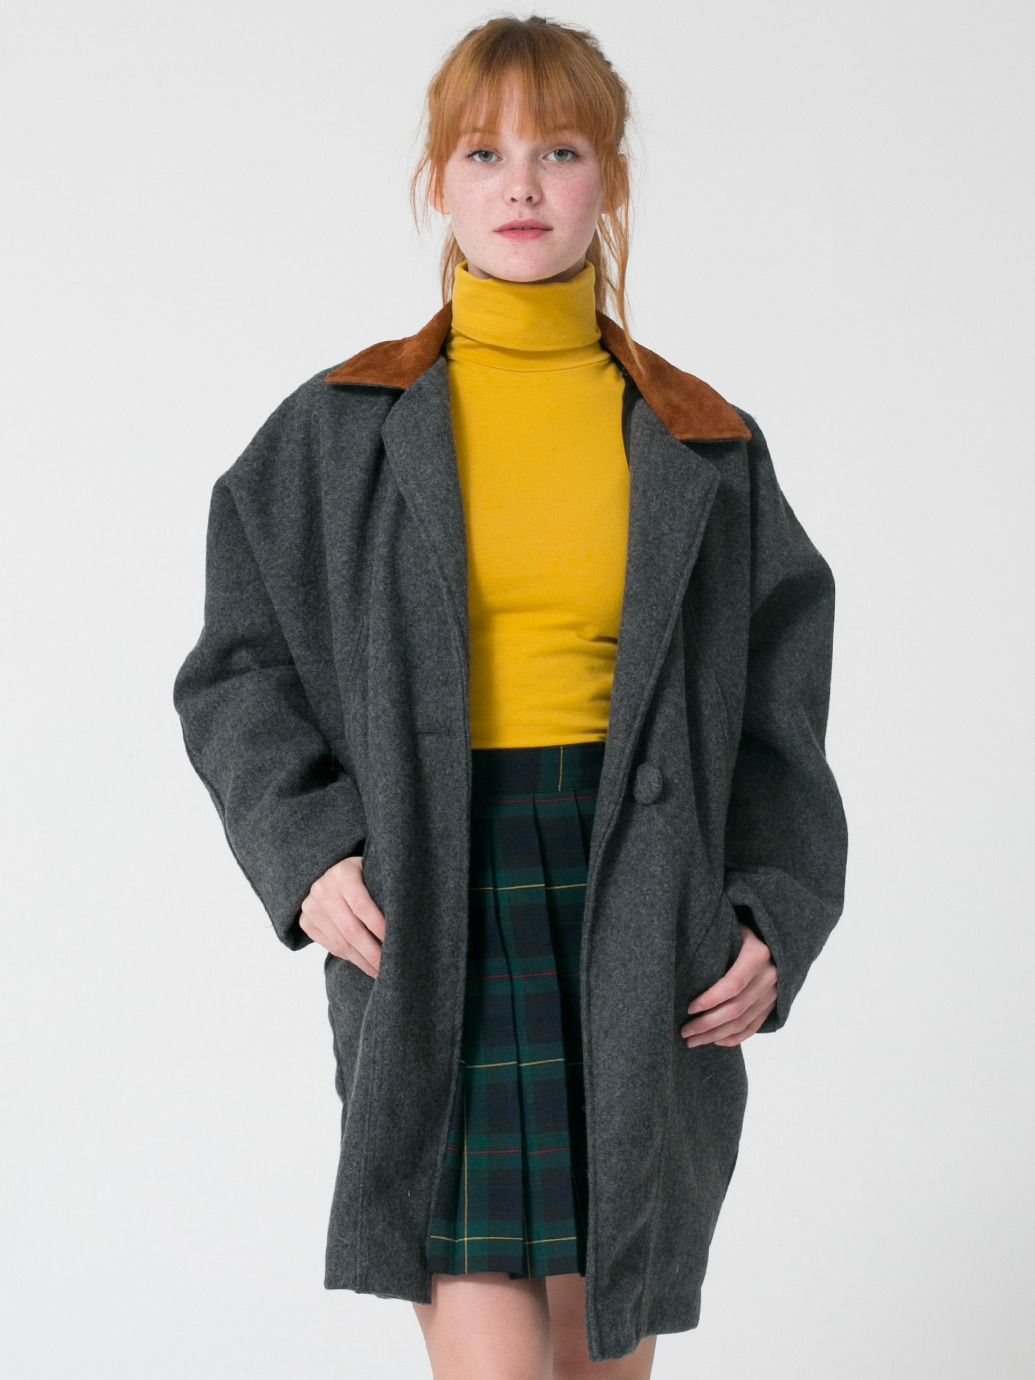 Petite Unisex Long Wool Coat | Parkas & Coats | Women's Outerwear ...